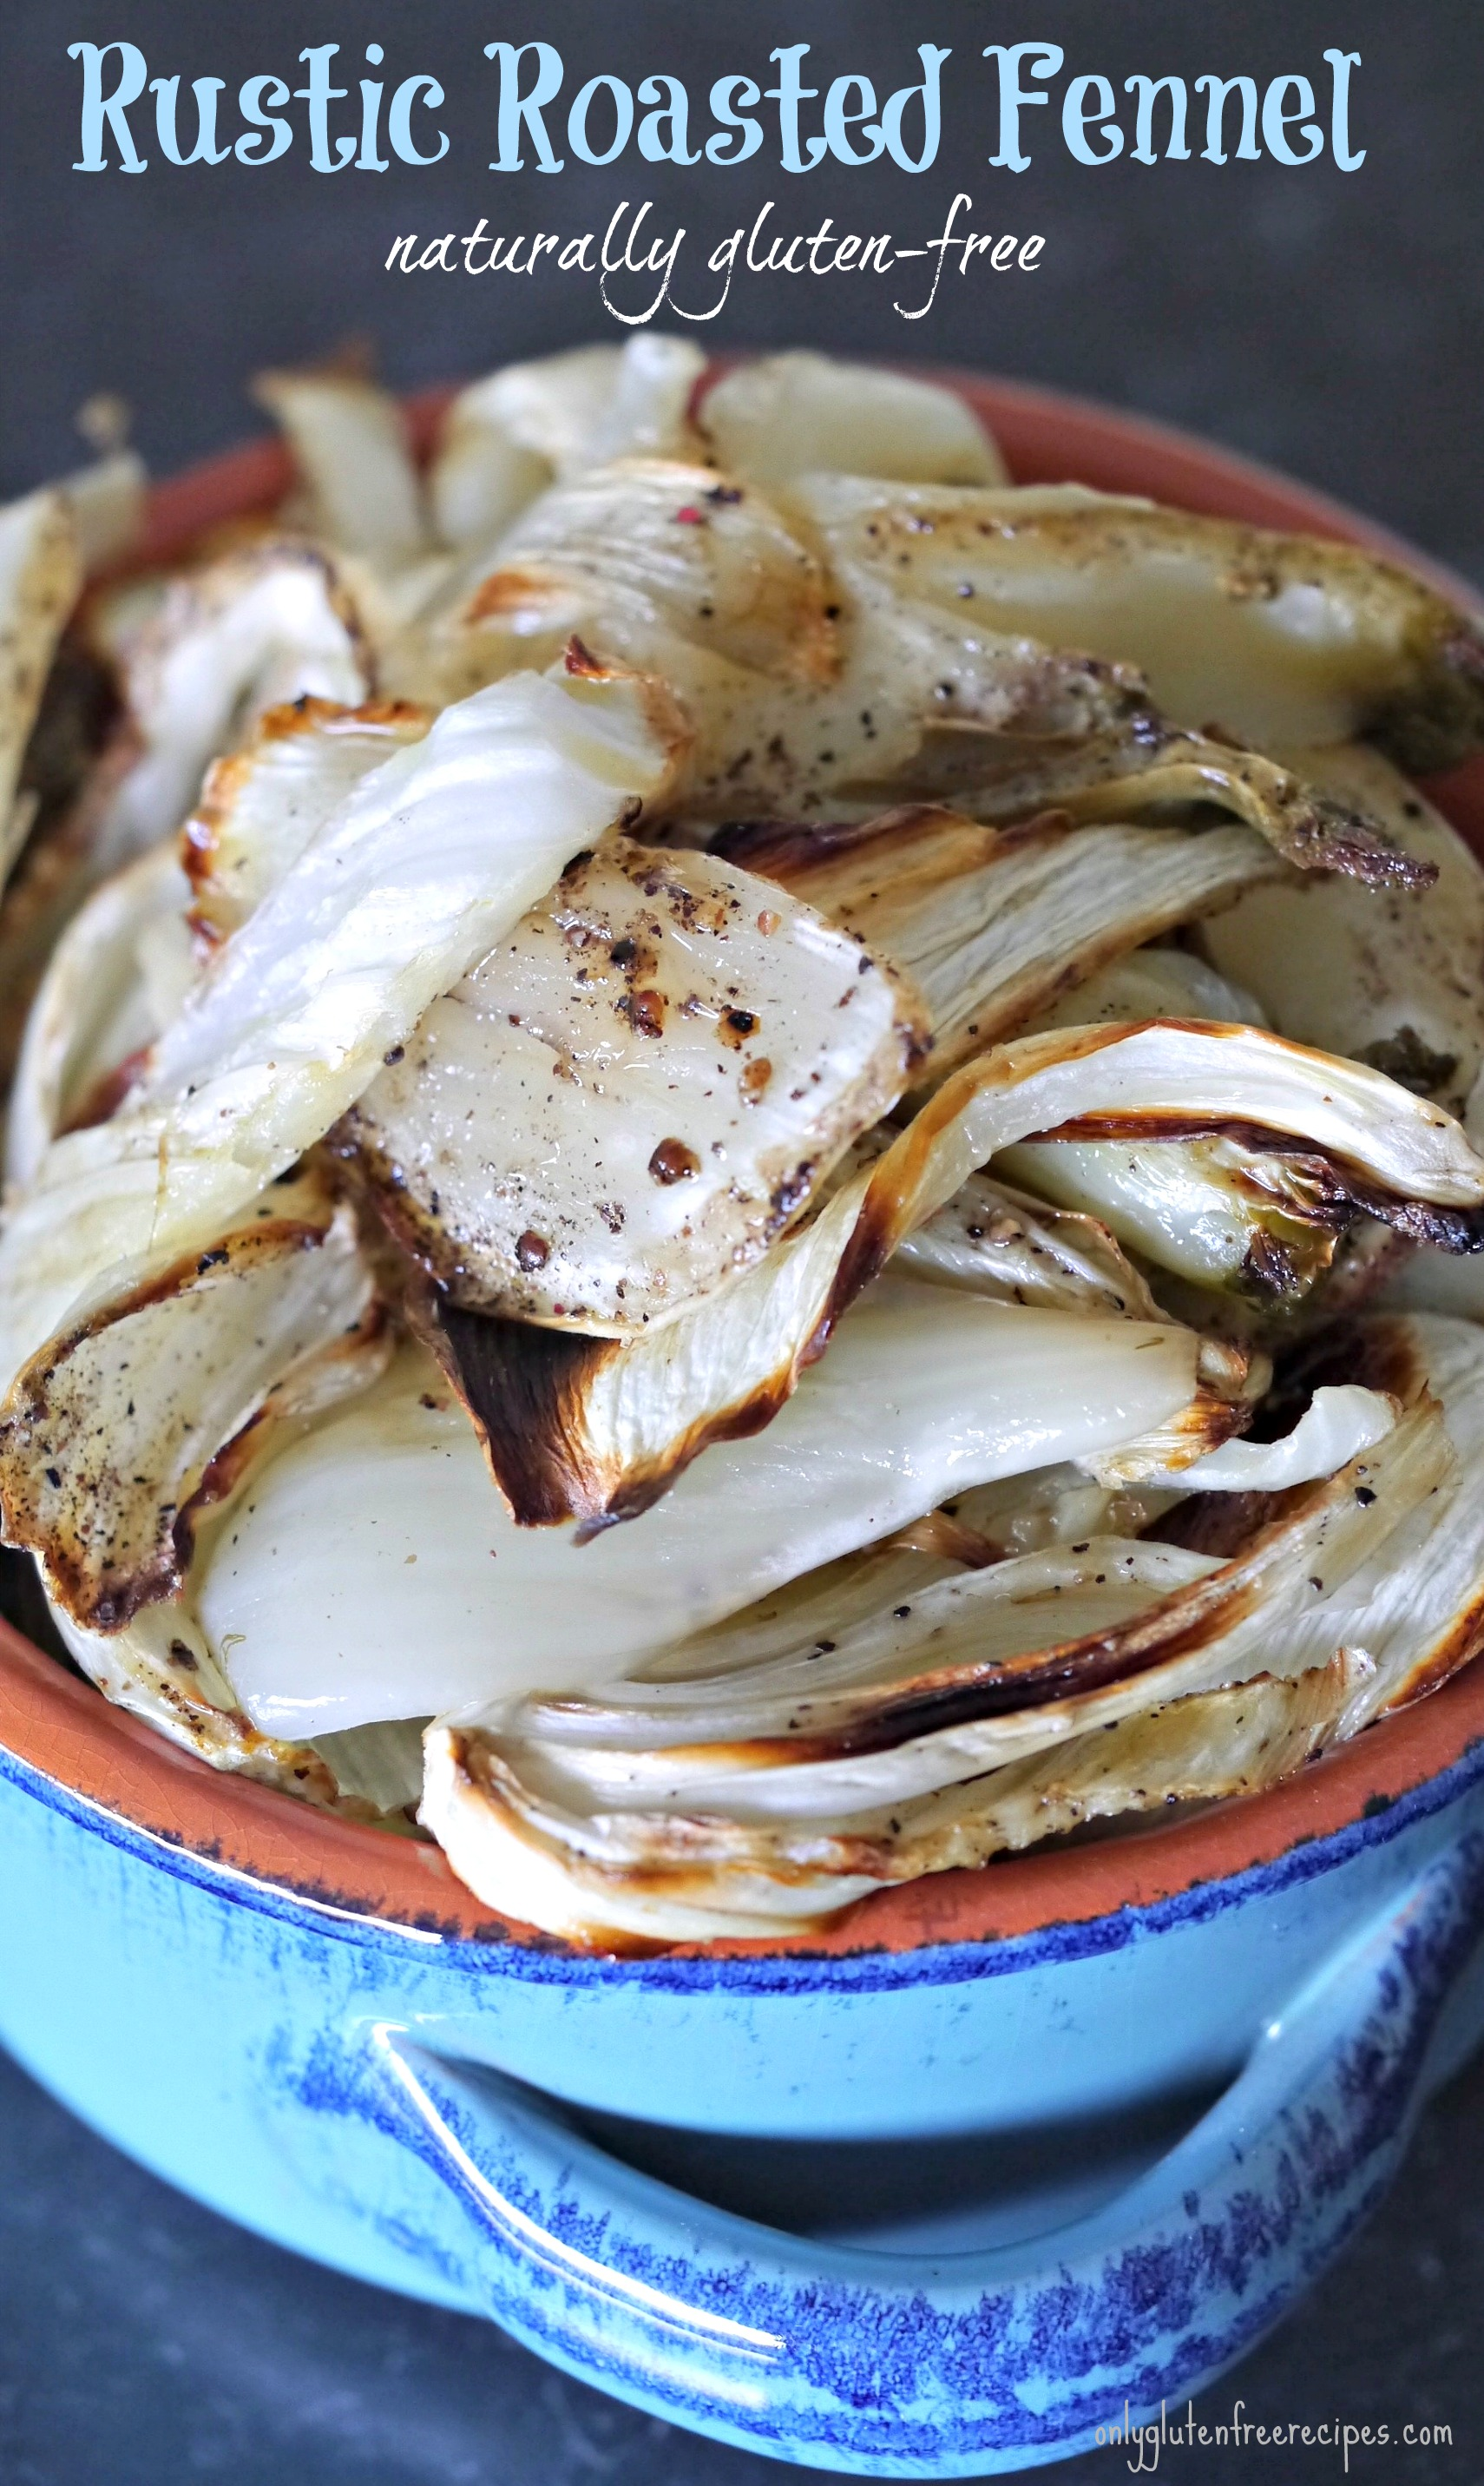 Rustic Roasted Fennel